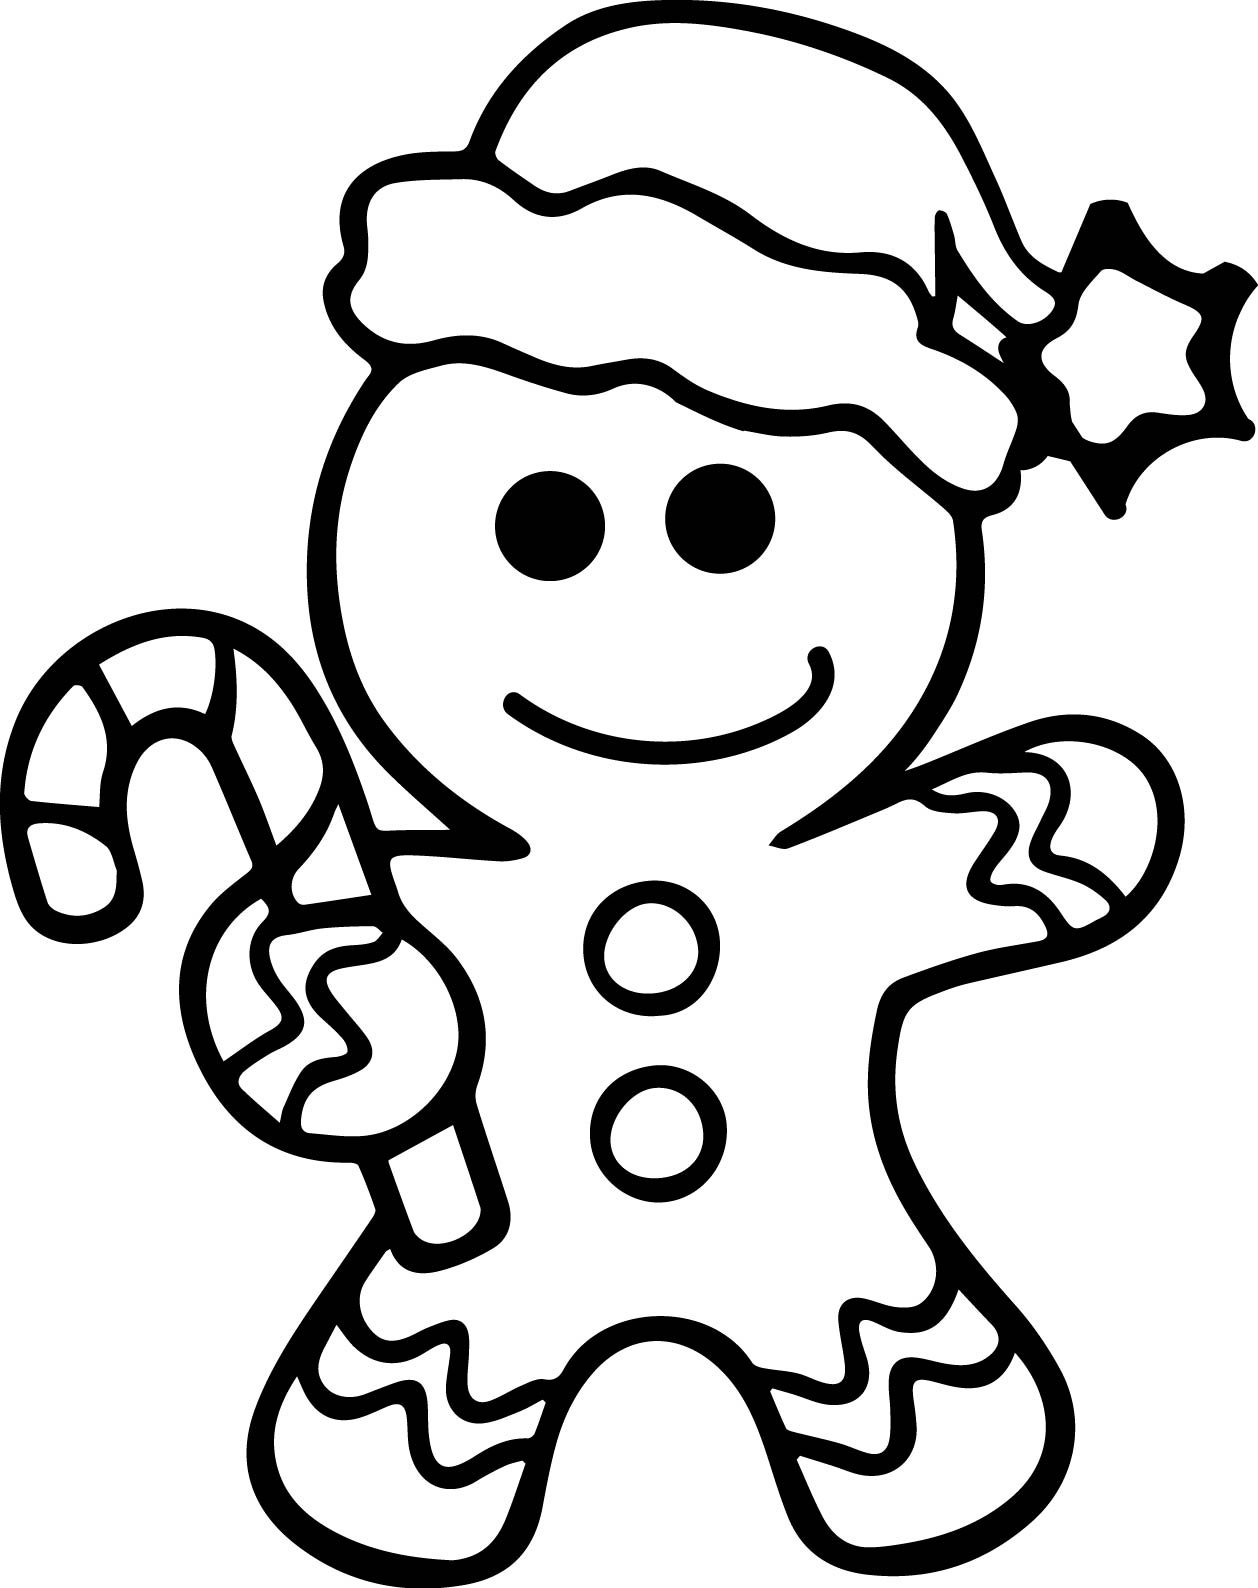 the gingerbread man template gingerbread man outline free download on clipartmag the gingerbread man template